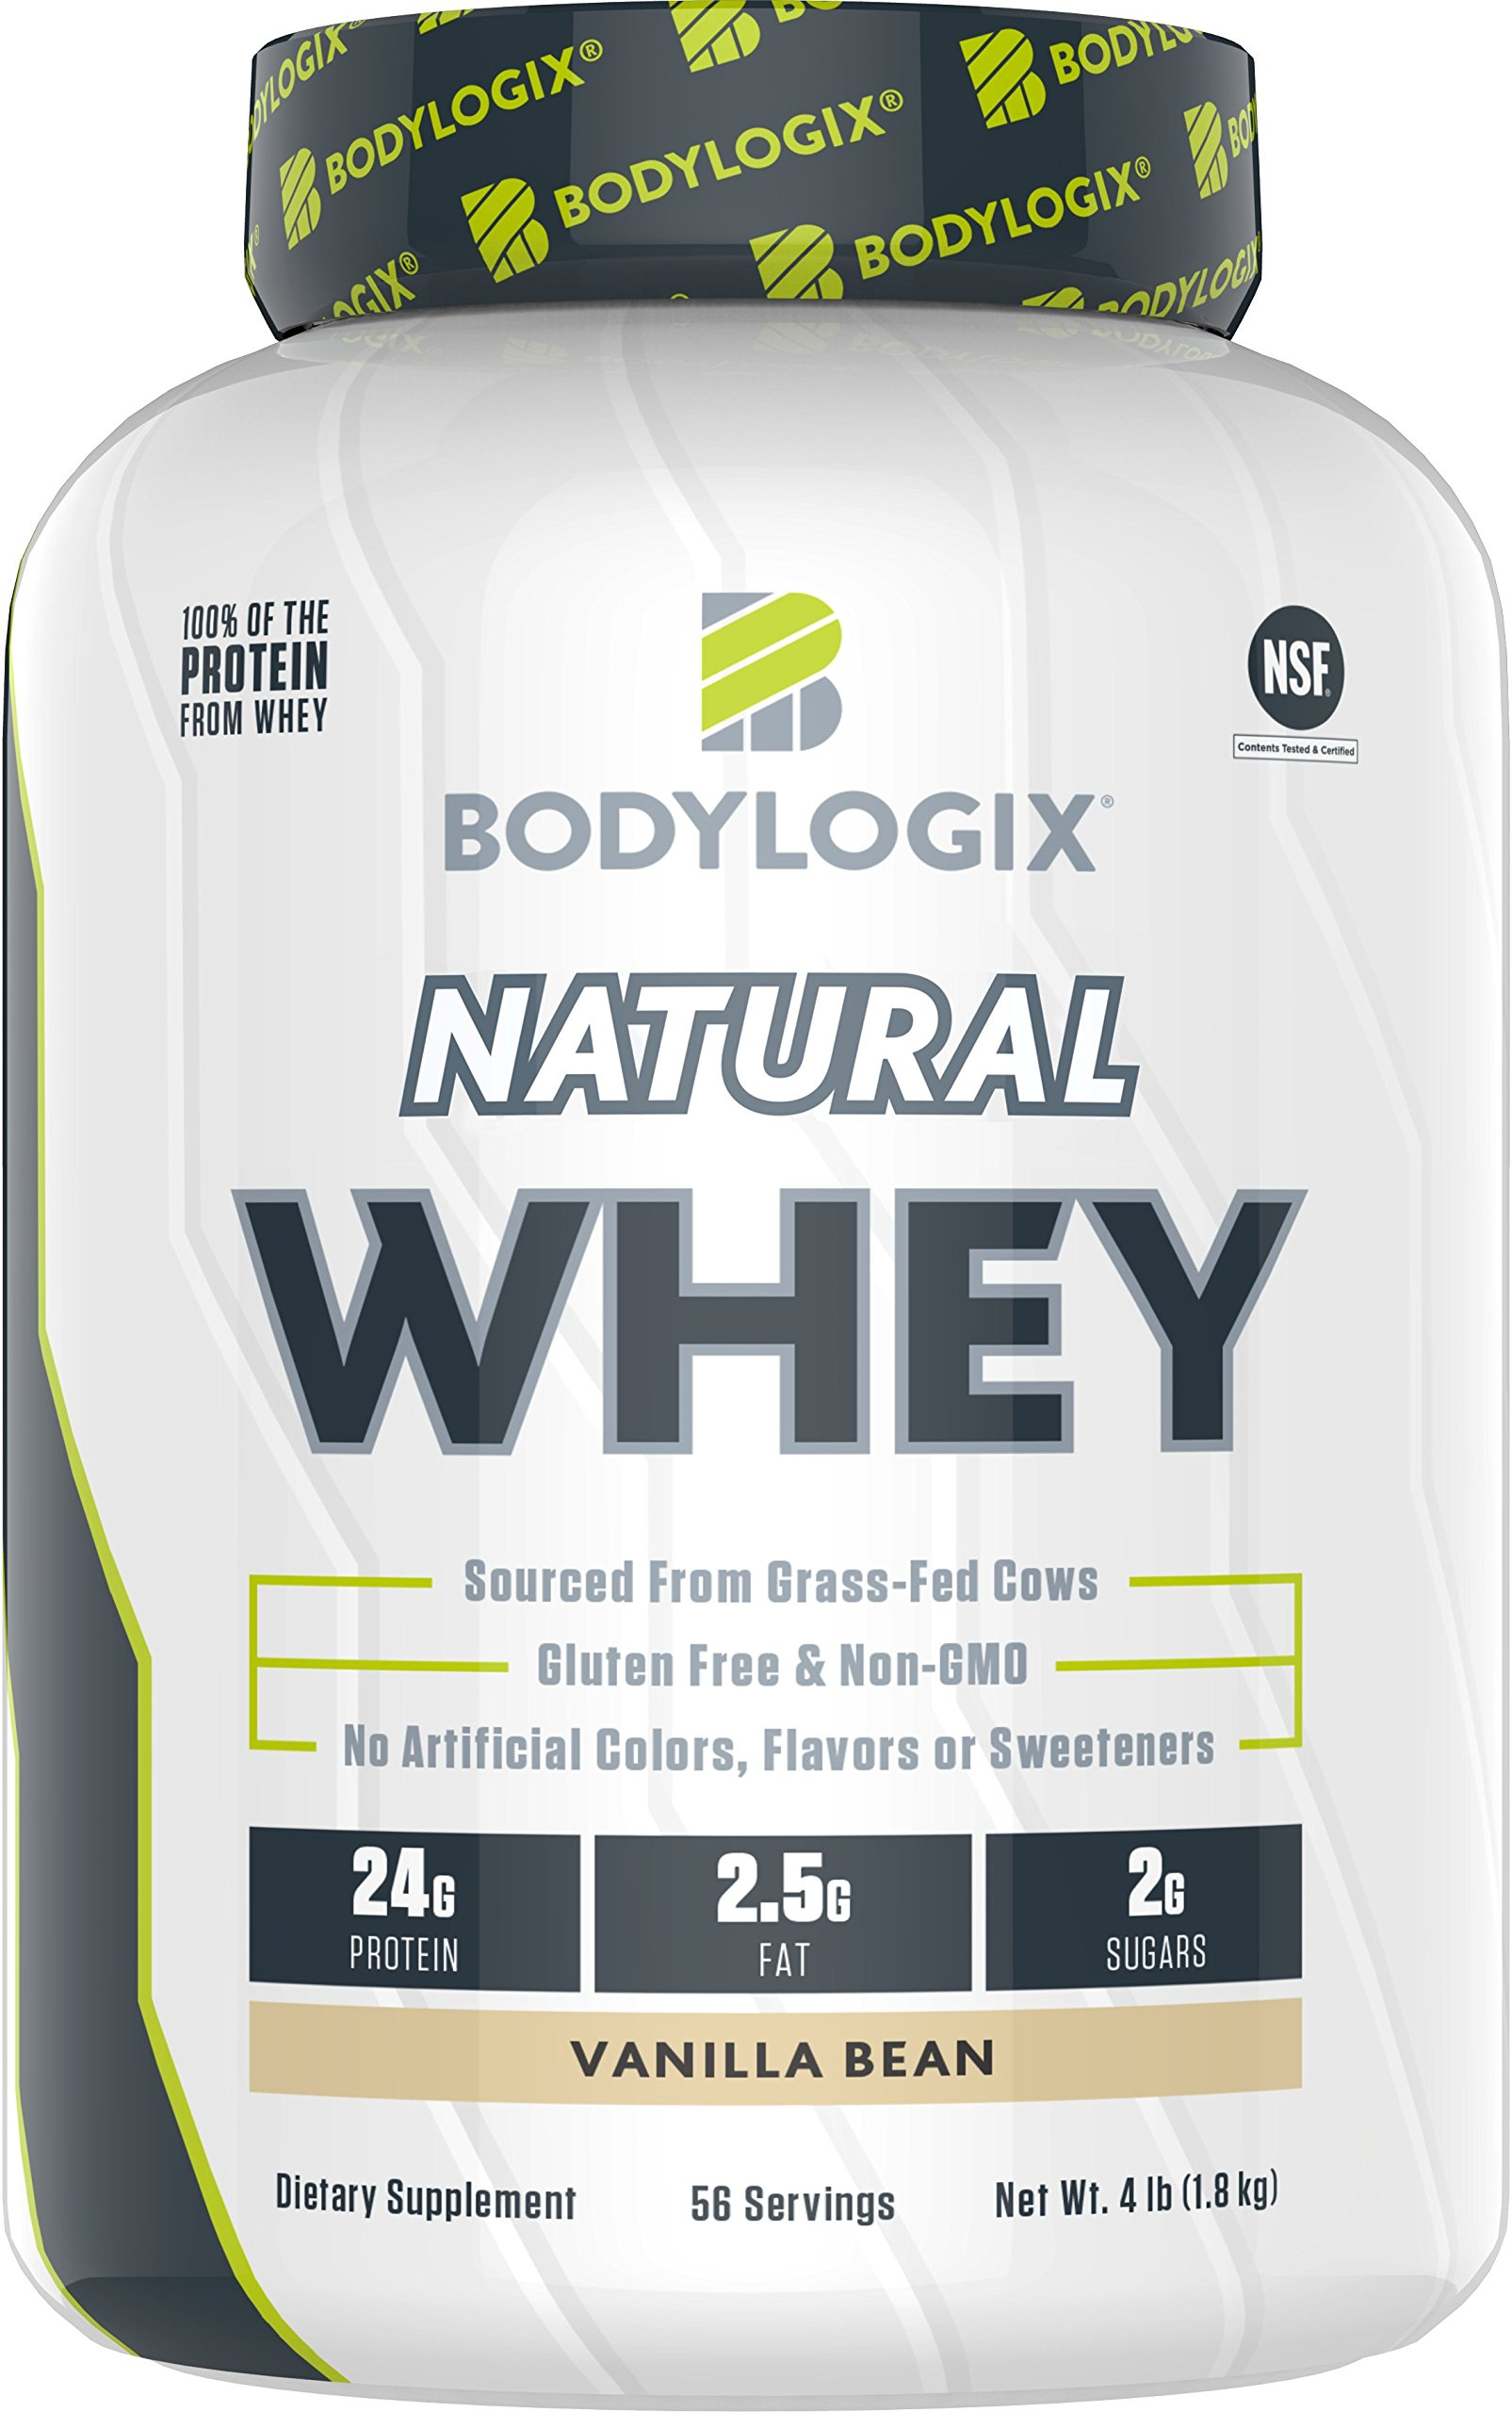 Bodylogix Natural Grass-Fed Whey Protein Powder, NSF Certified, Vanilla Bean, 4 Pound by Bodylogix